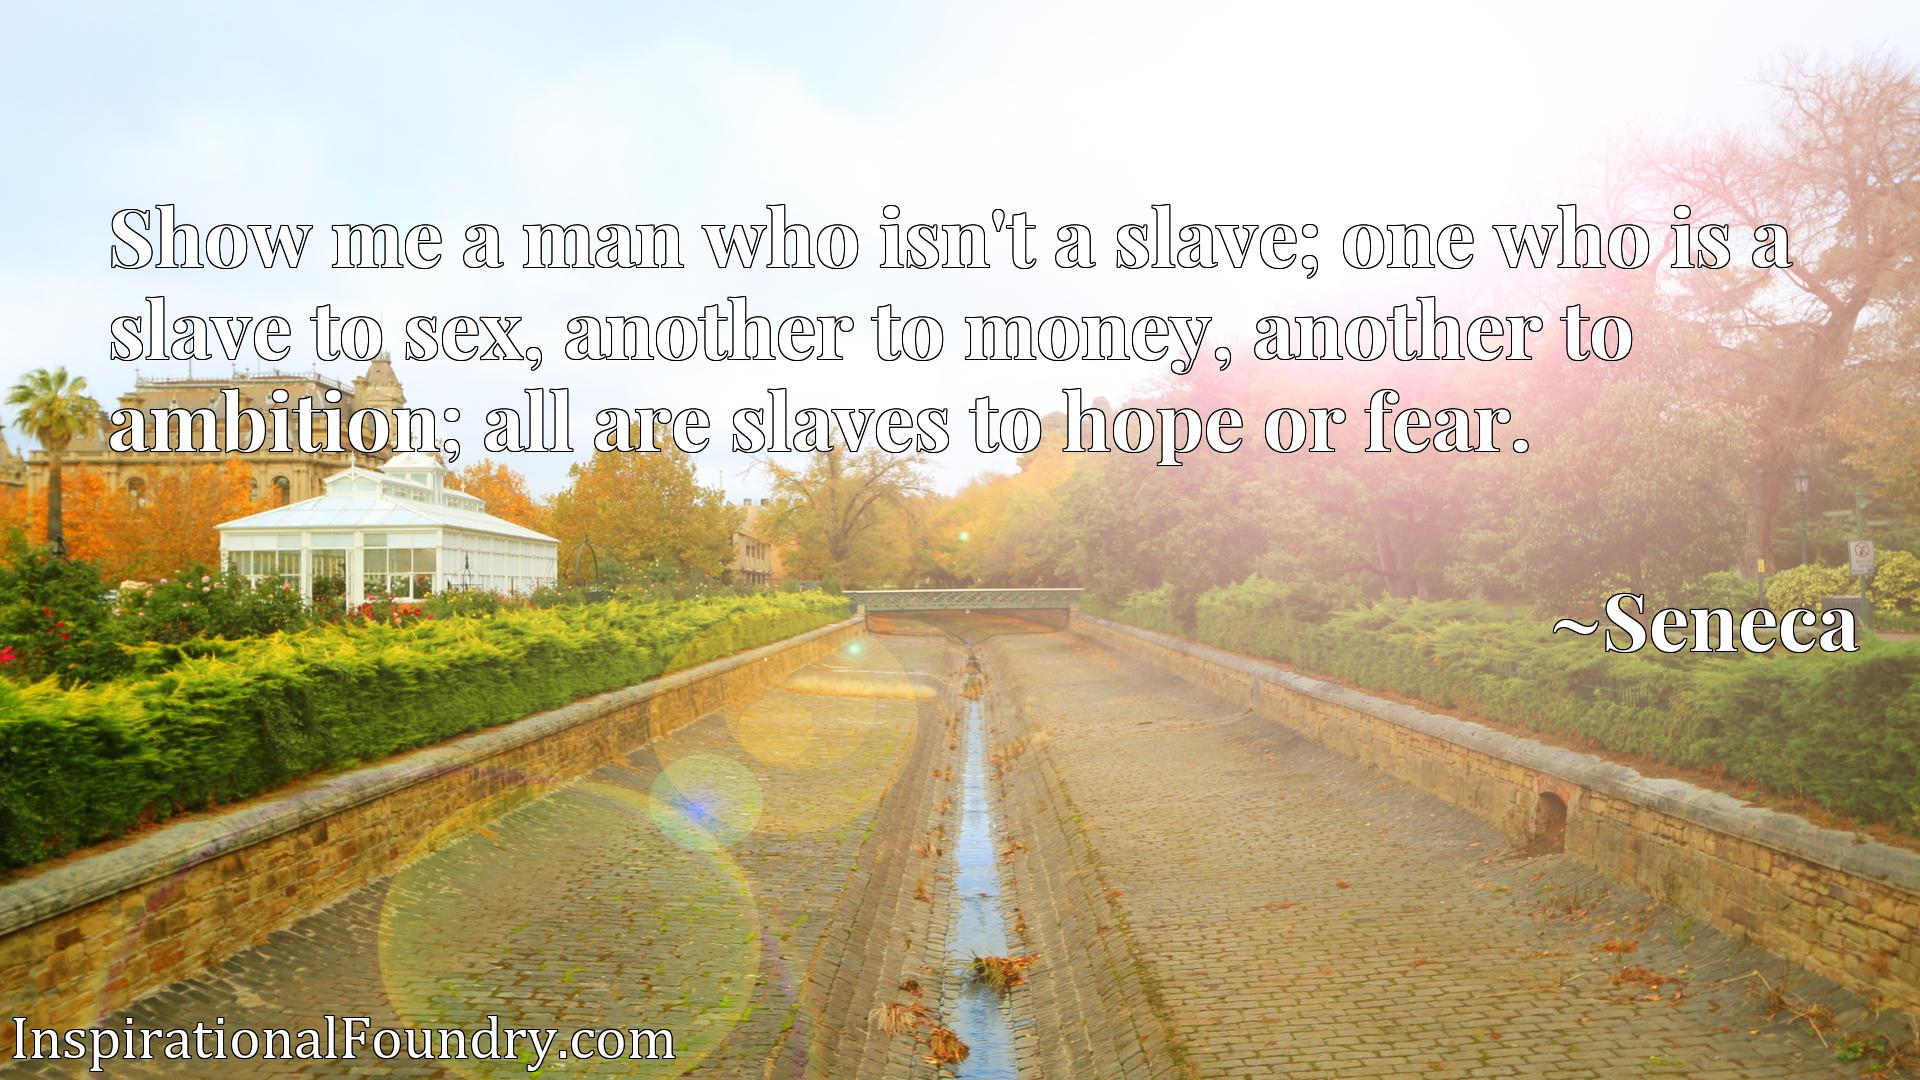 Show me a man who isn't a slave; one who is a slave to sex, another to money, another to ambition; all are slaves to hope or fear.